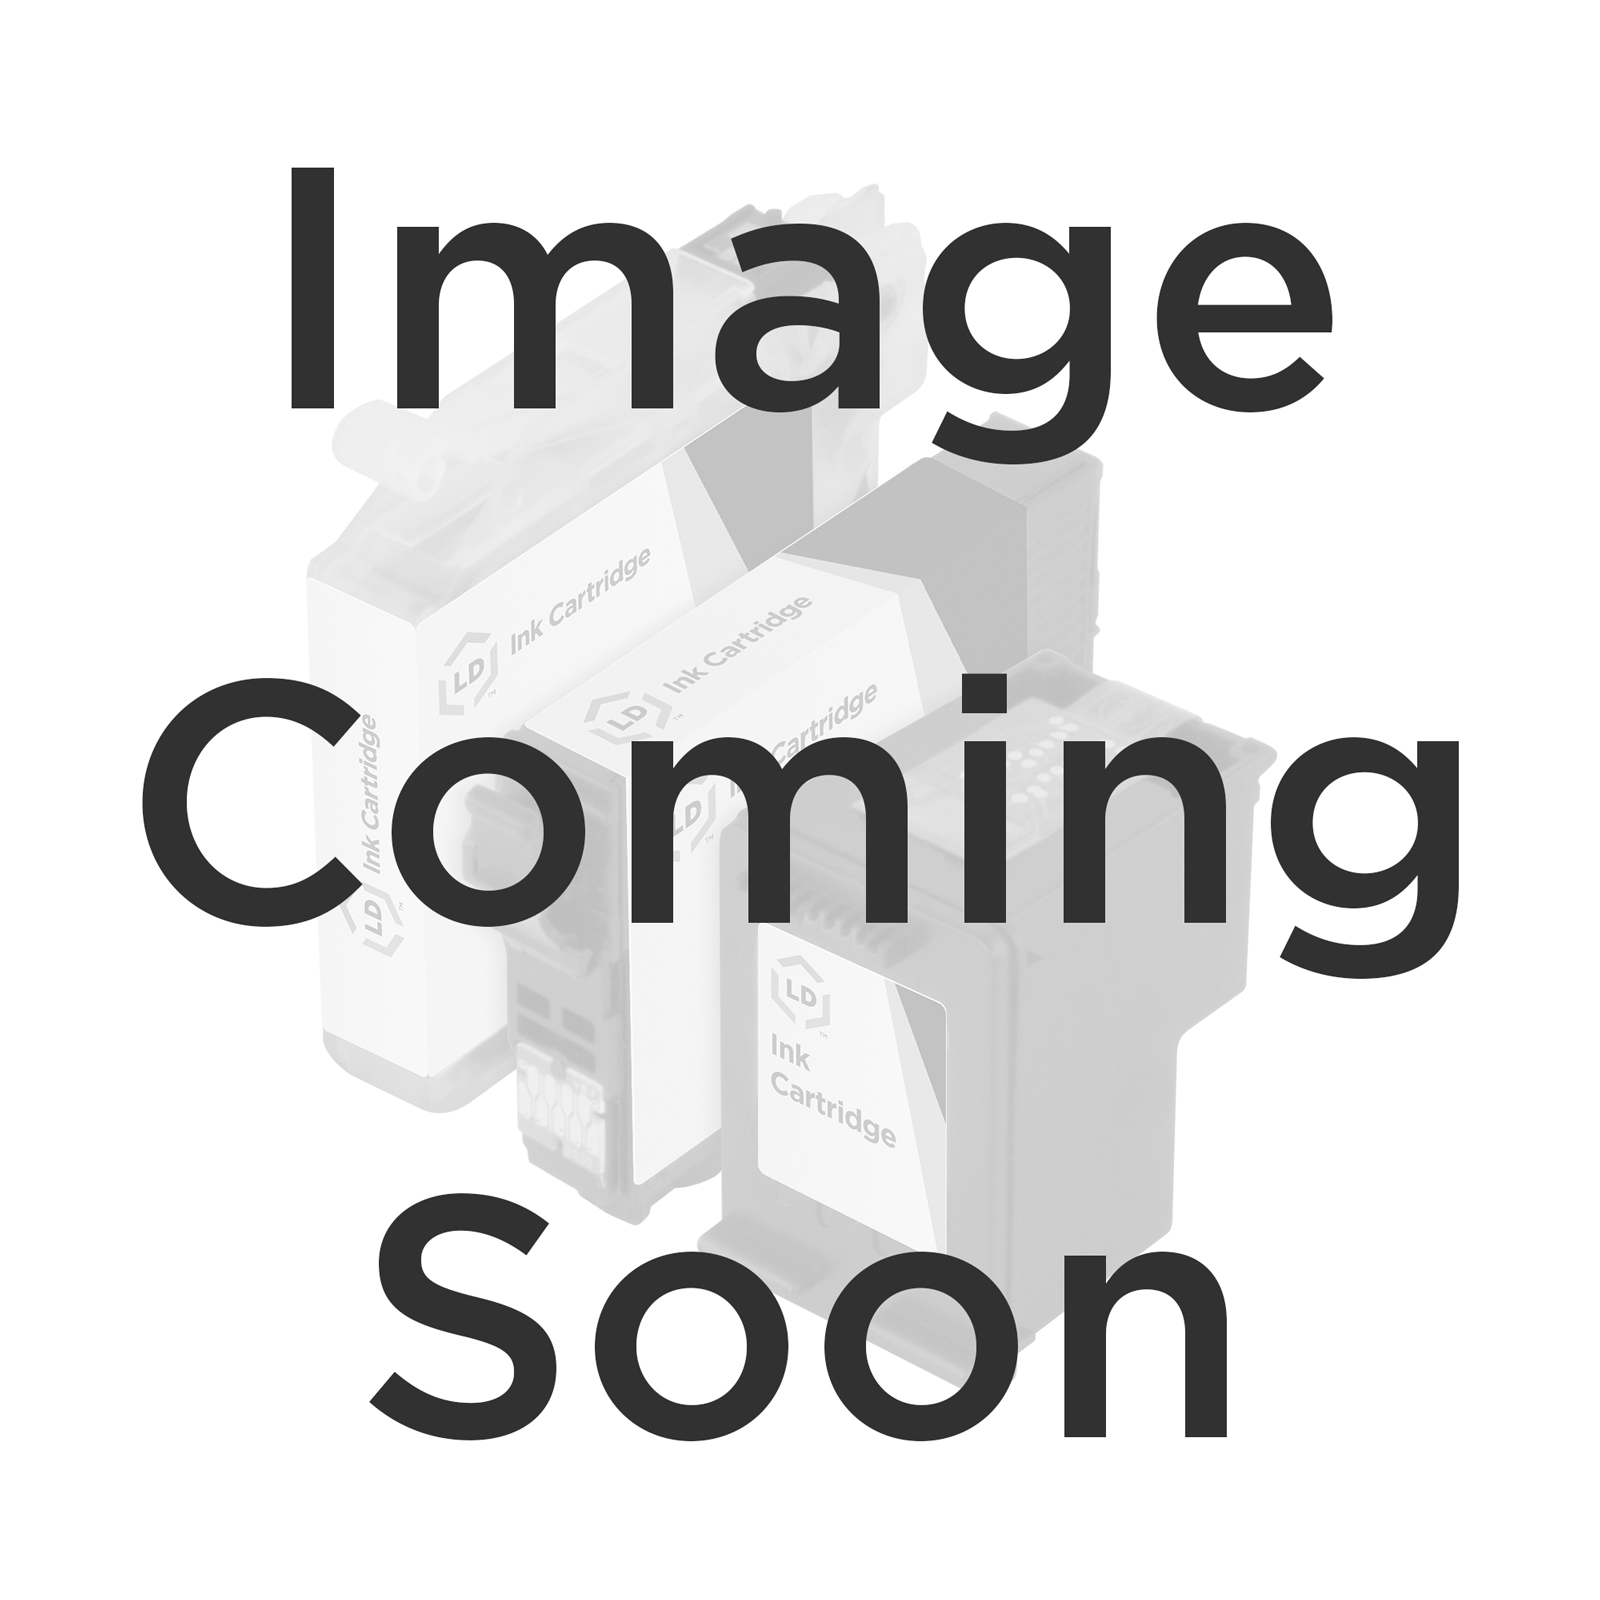 "Roaring Spring Composition Book - 80 Sheet - 15.00 lb - College Ruled - 9.75"" x 7.50"""